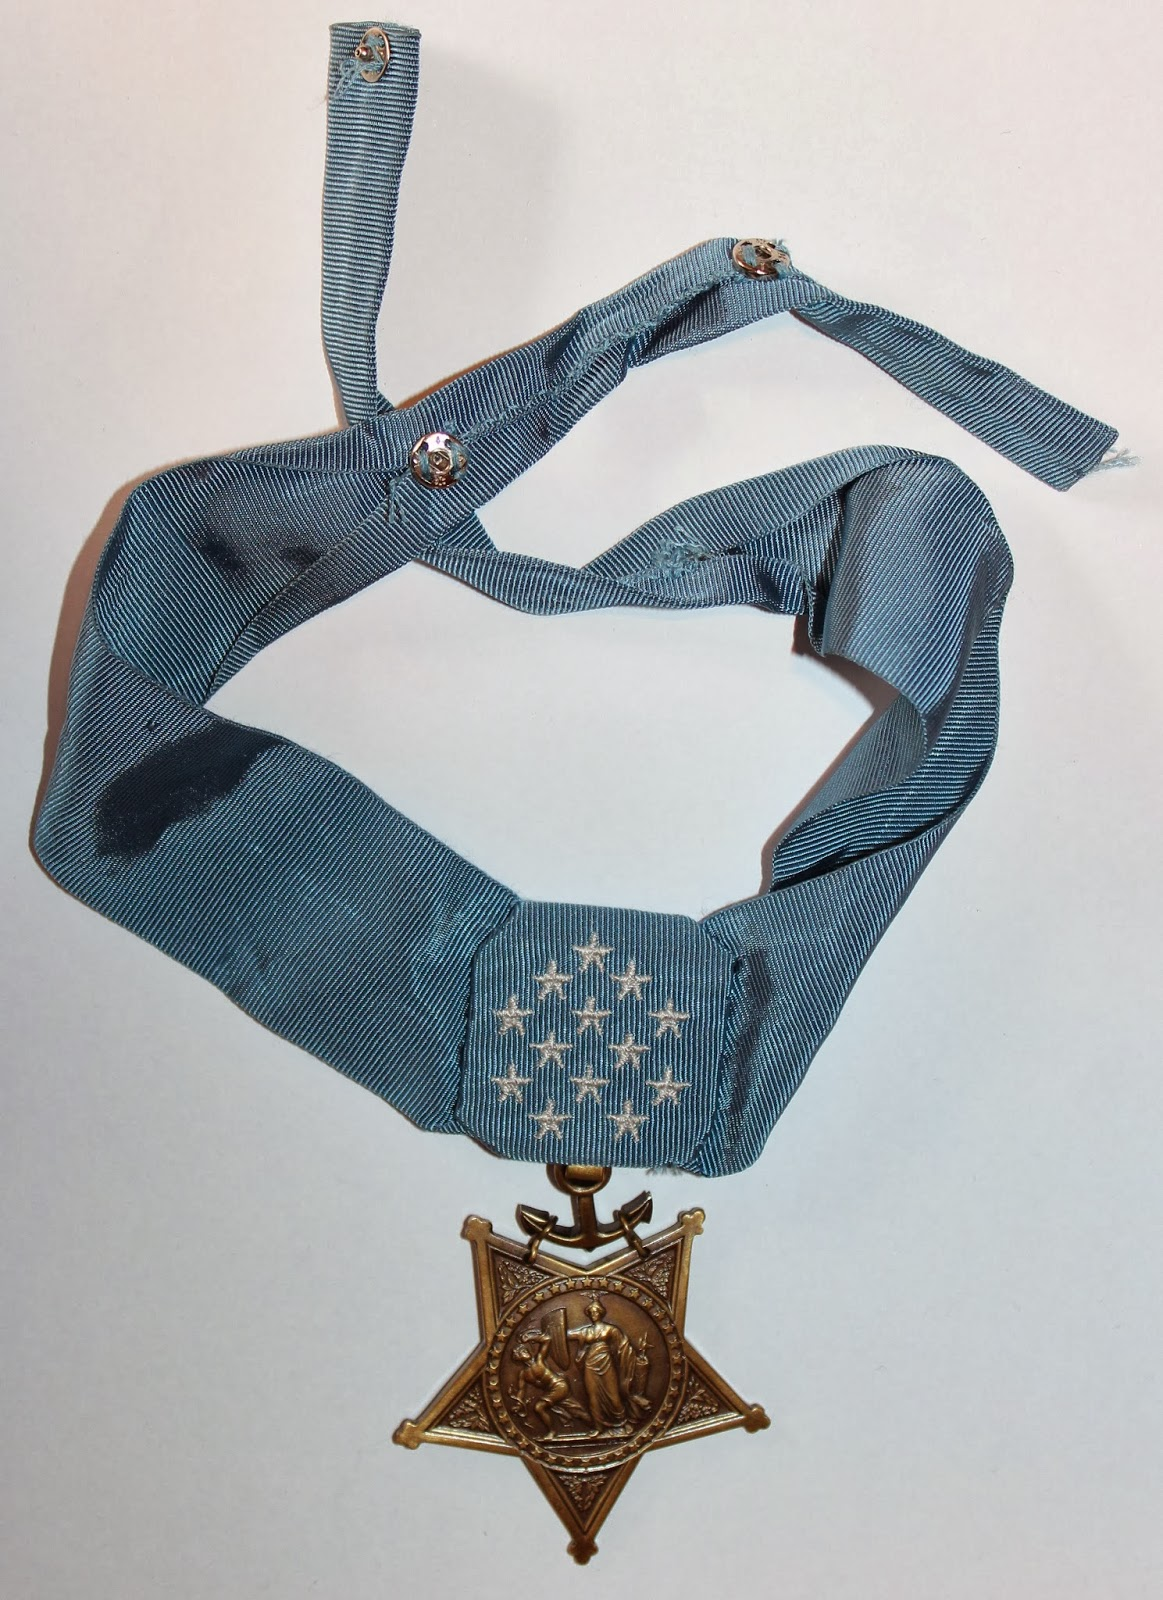 Archie van Winkle Medal of Honor